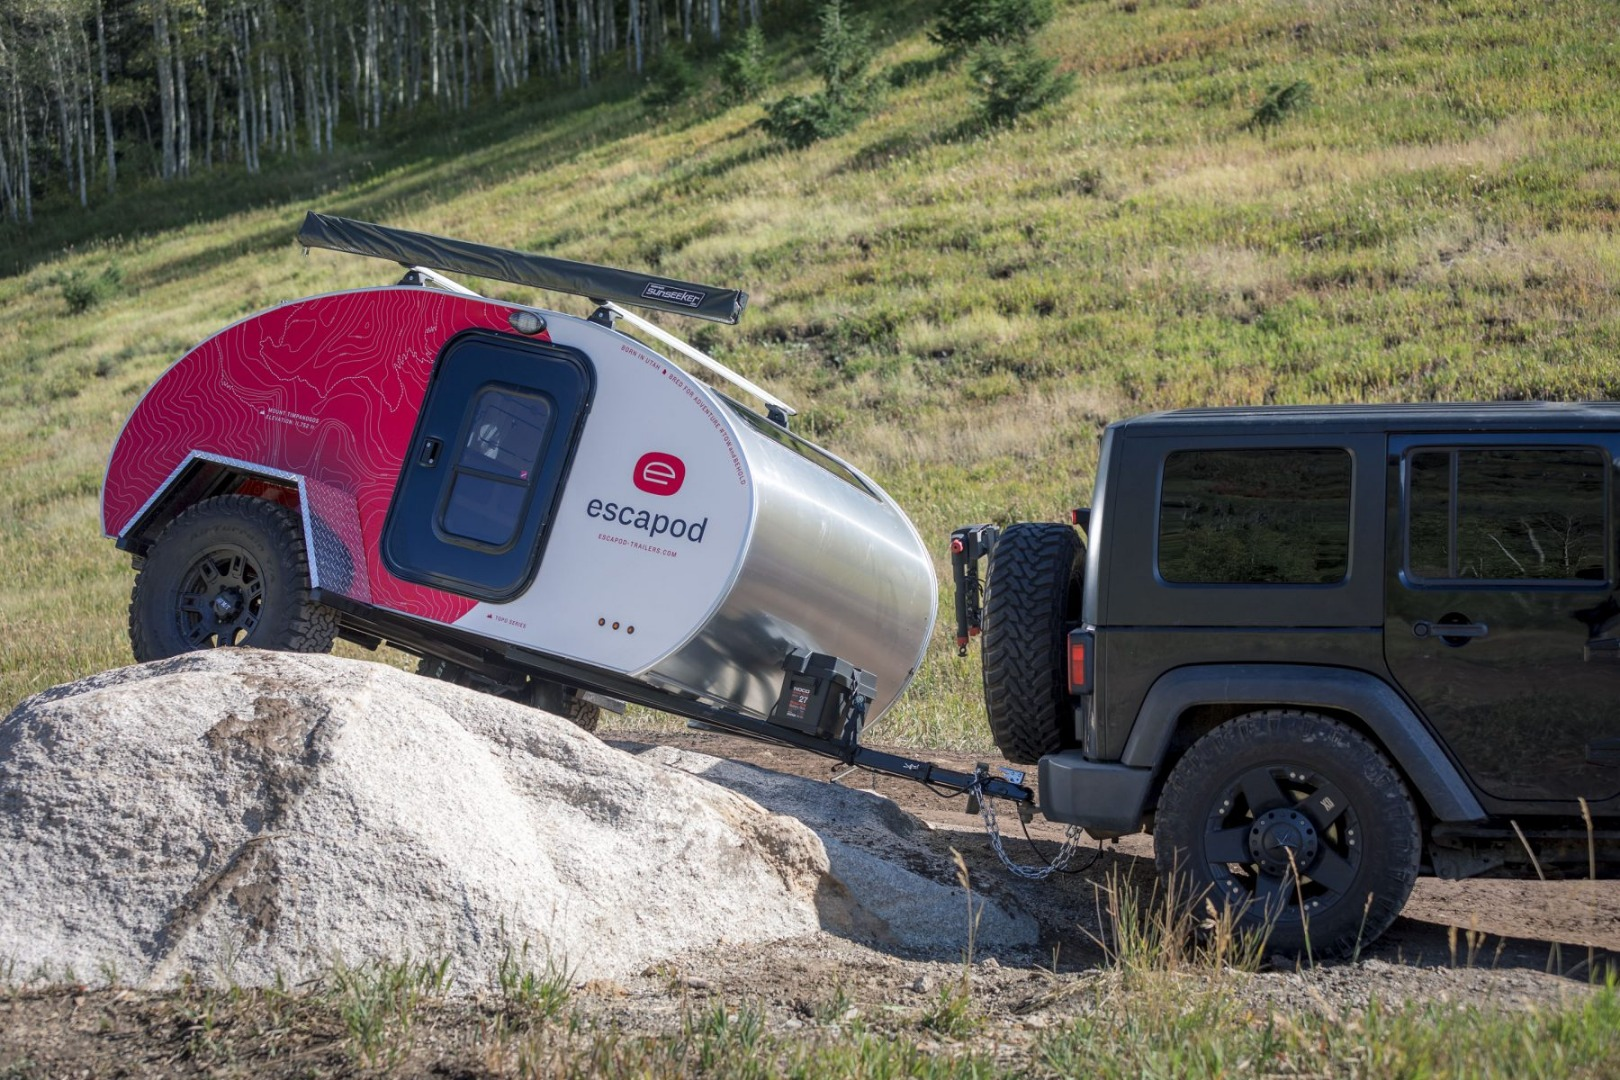 Escapod Topo travels farther and wilder than your average teardrop trailer